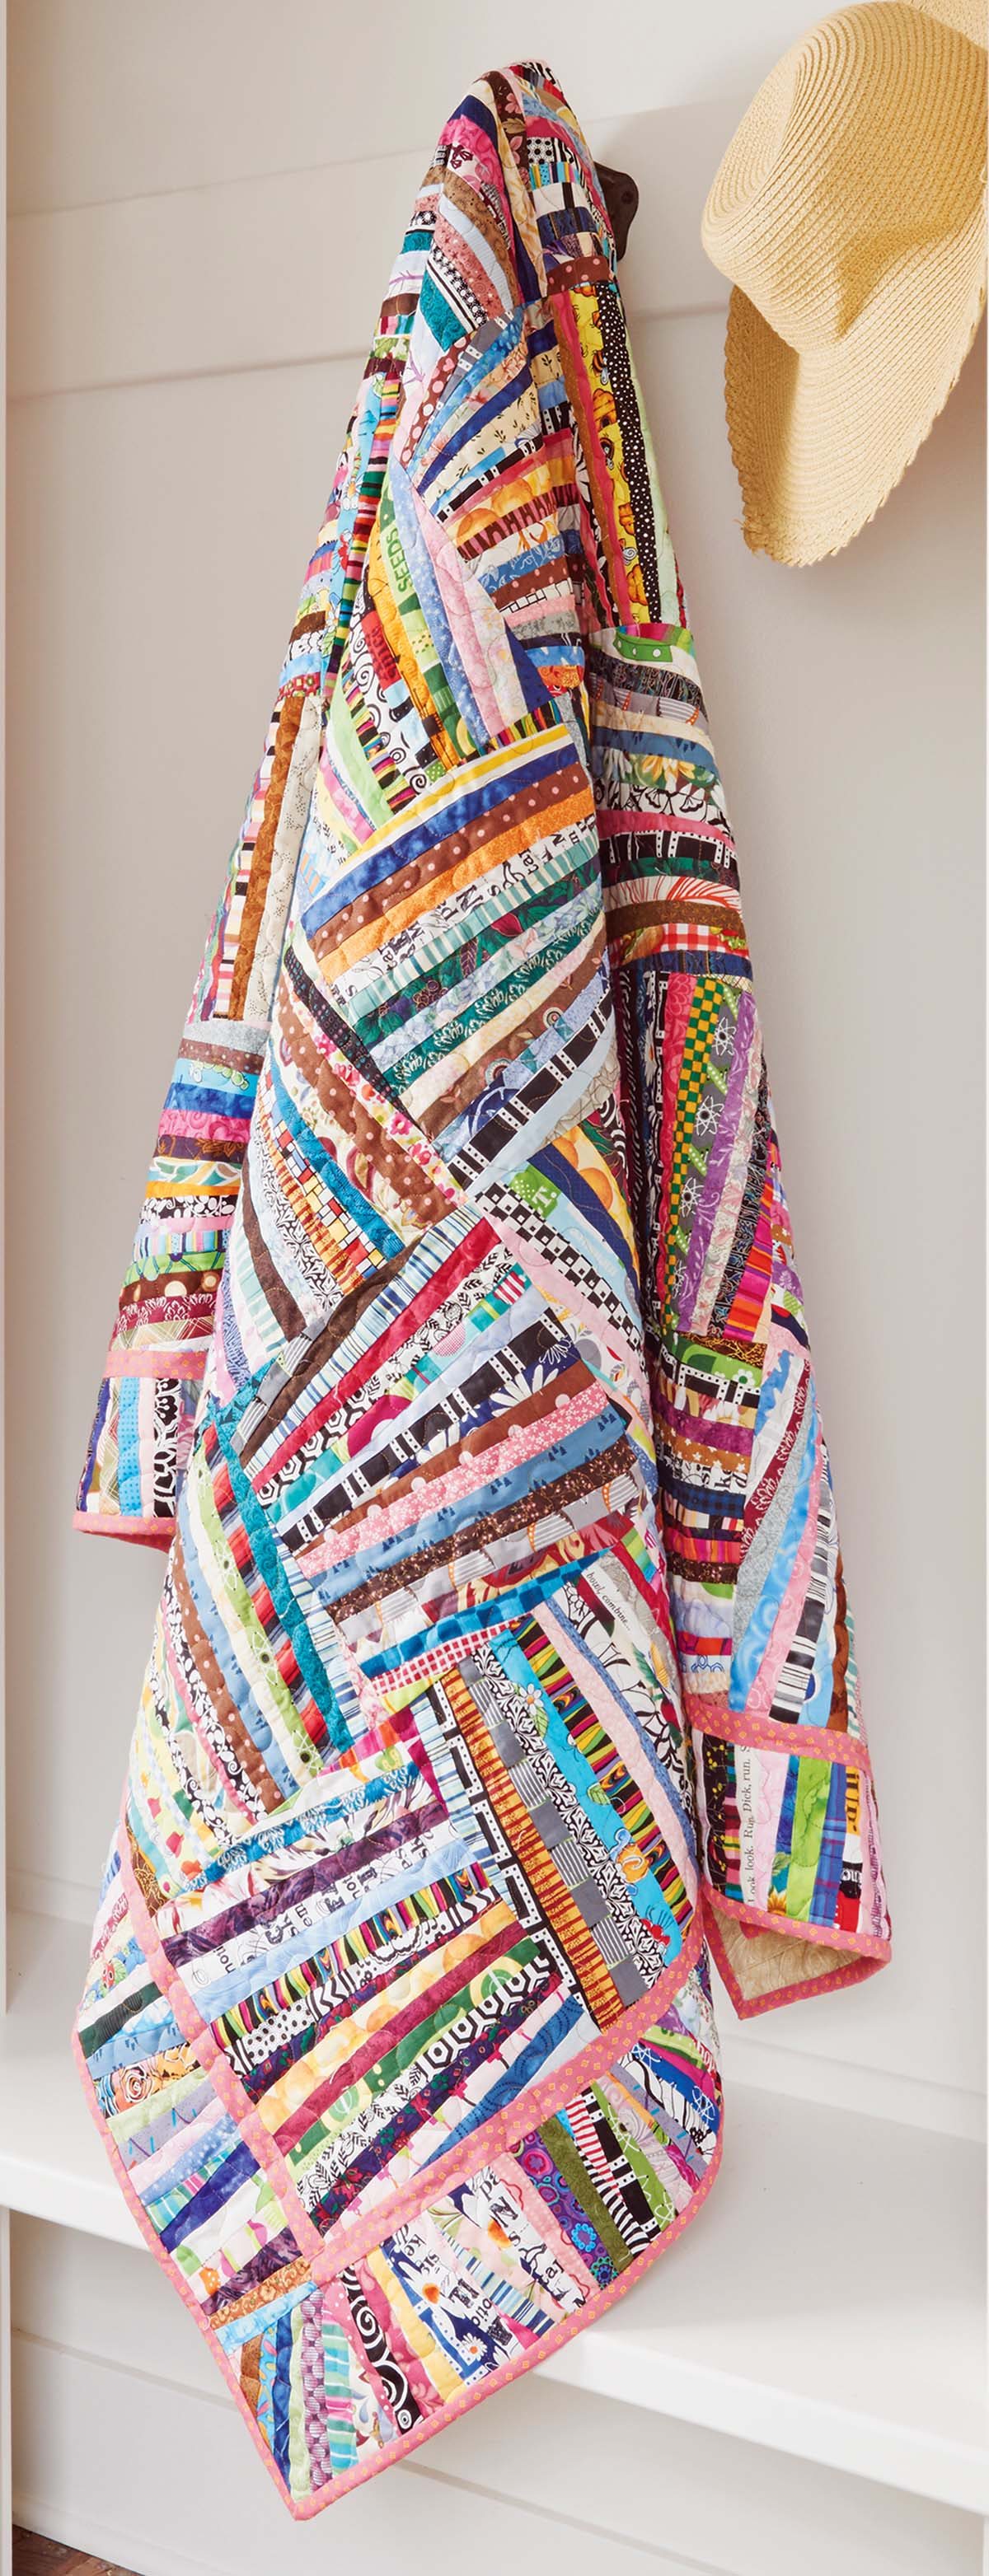 scrap-quilts-fall-2017-Oh-Look-Oh-Look